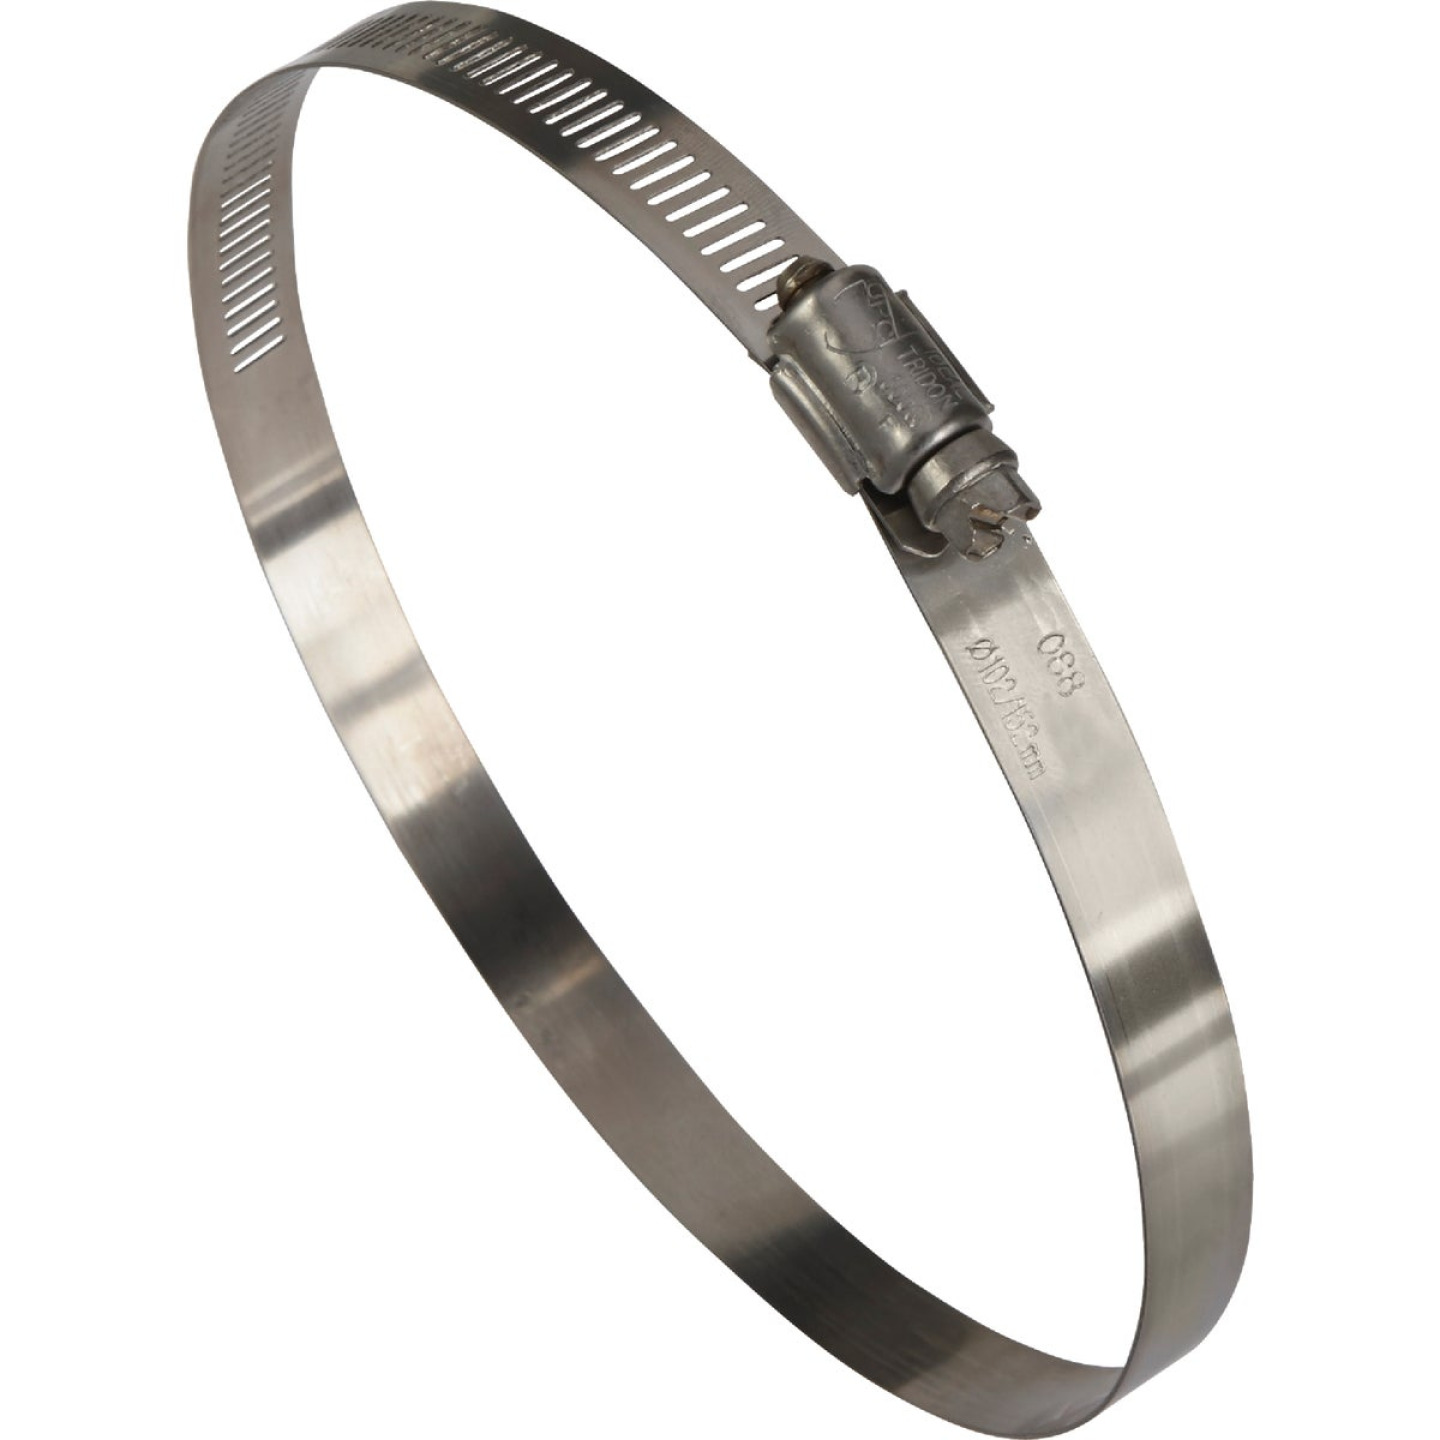 Ideal 4 In. - 6 In. 67 All Stainless Steel Hose Clamp Image 1